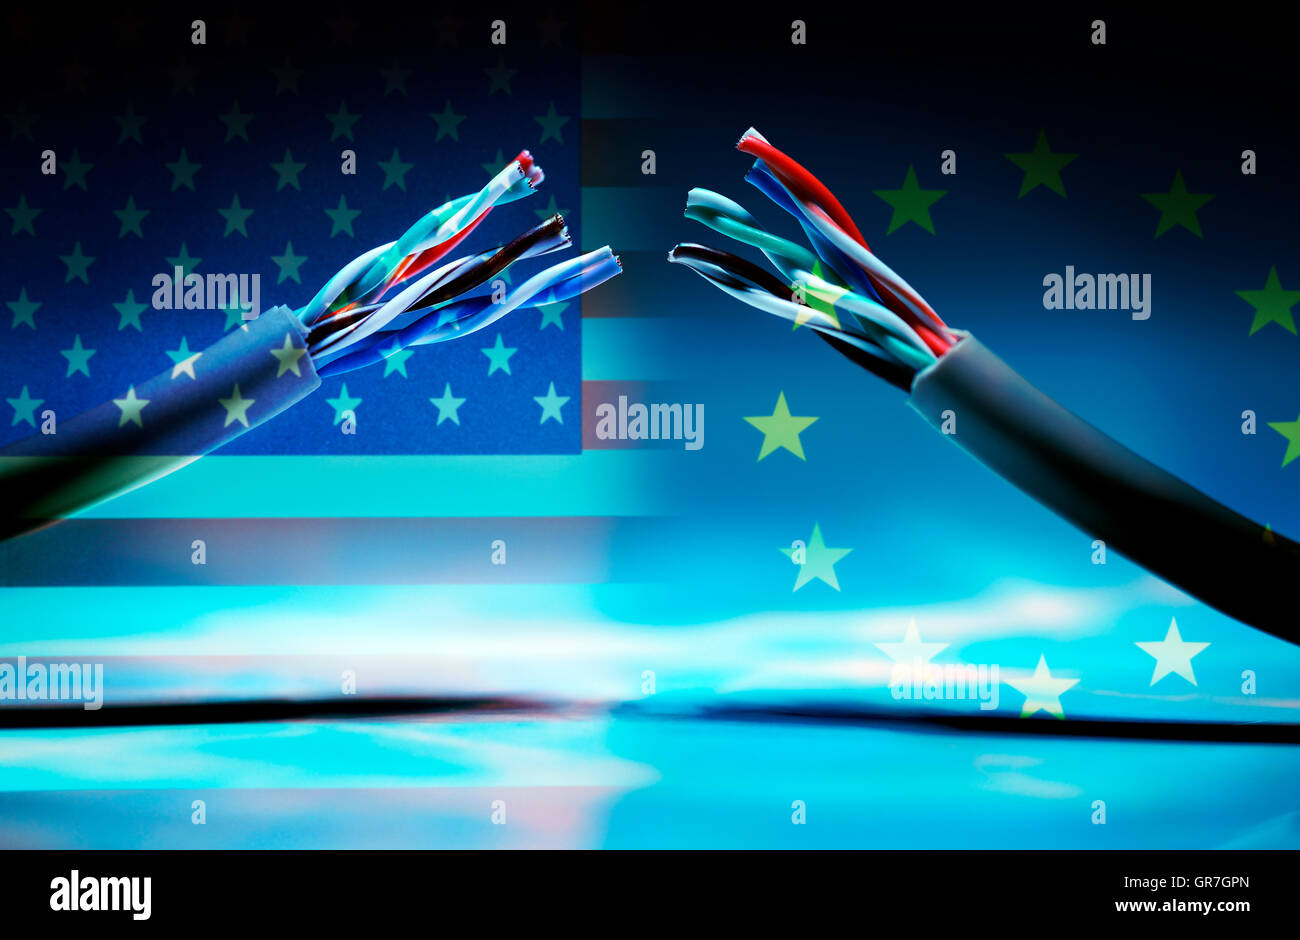 Torn Data Cable And Flags Of The Usa And The Eu, Safe Harbor Statement Stock Photo